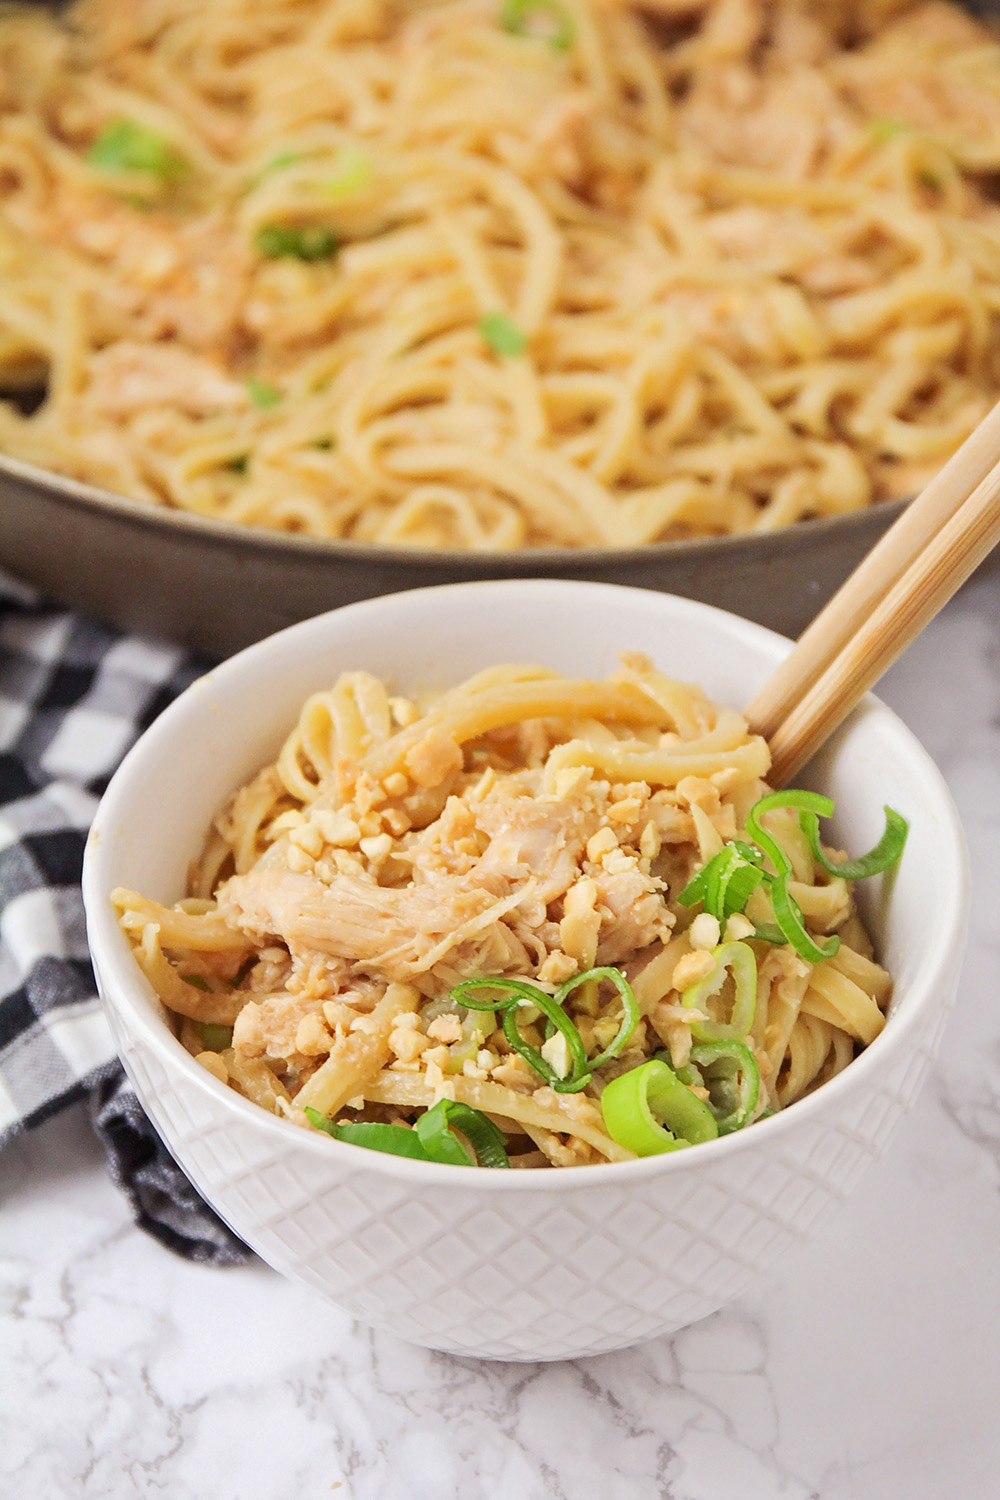 These thai peanut noodles are a savory and flavorful 30 minute meal that the whole family will love!